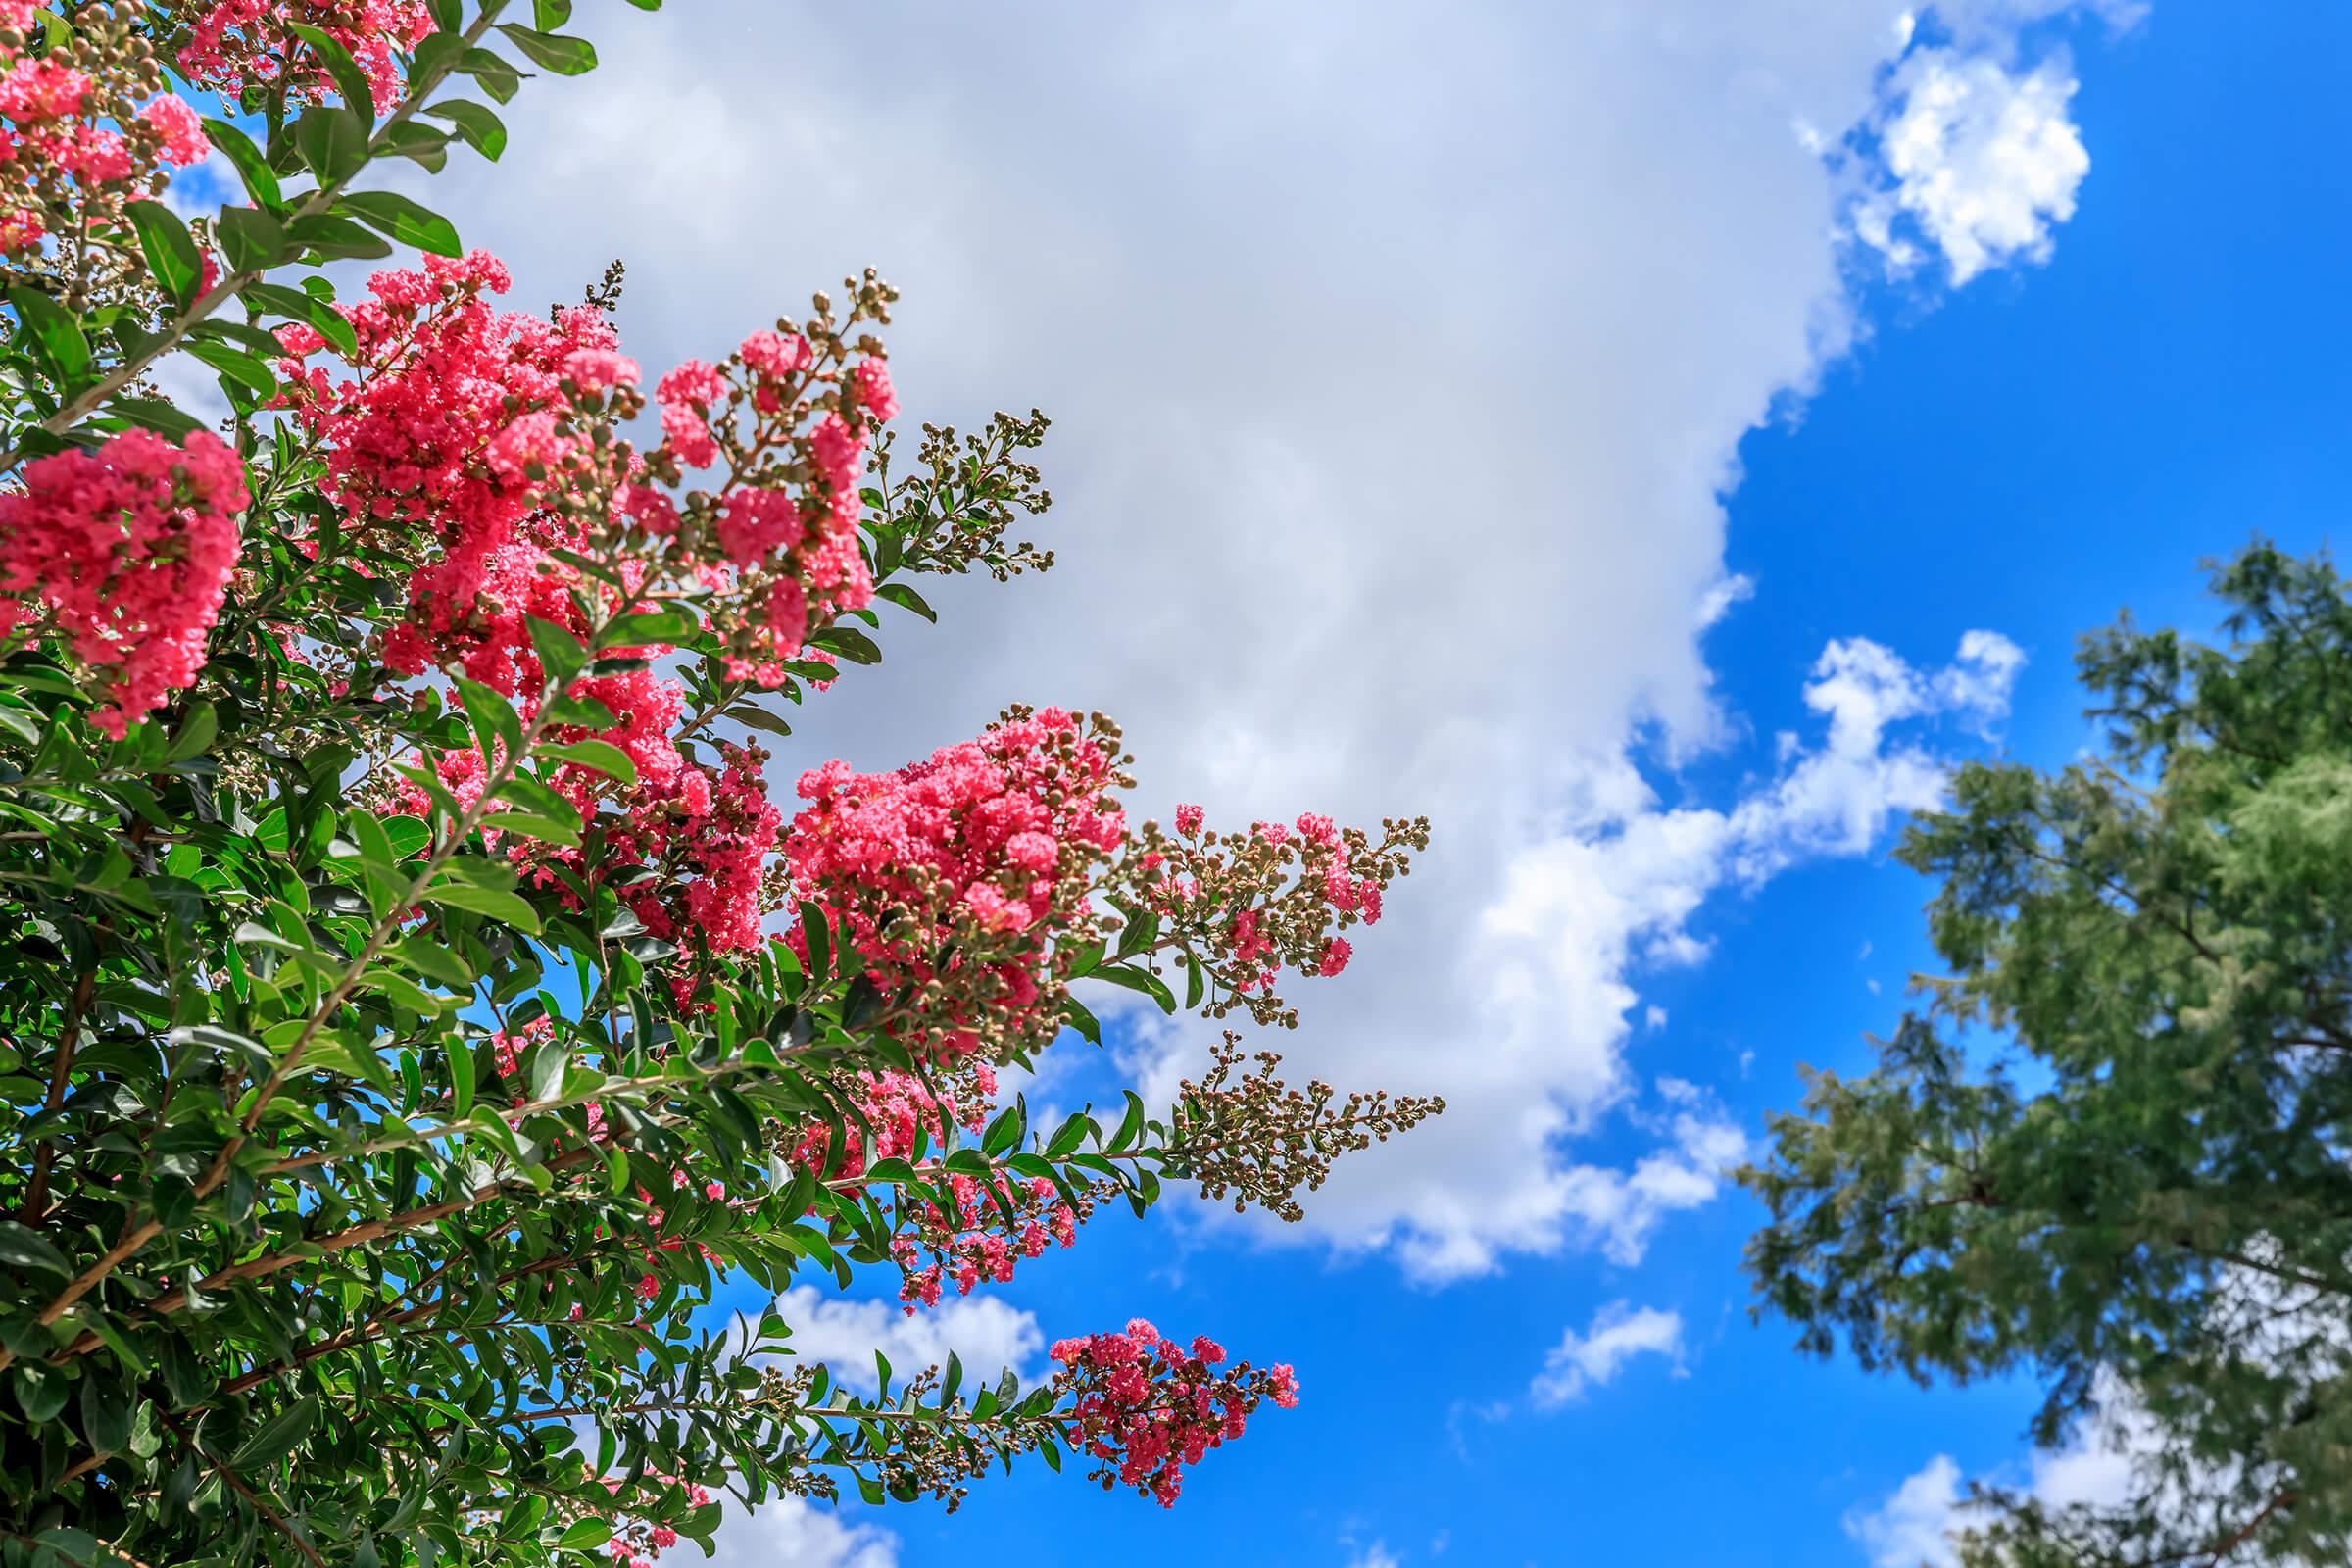 a tree with pink flowers